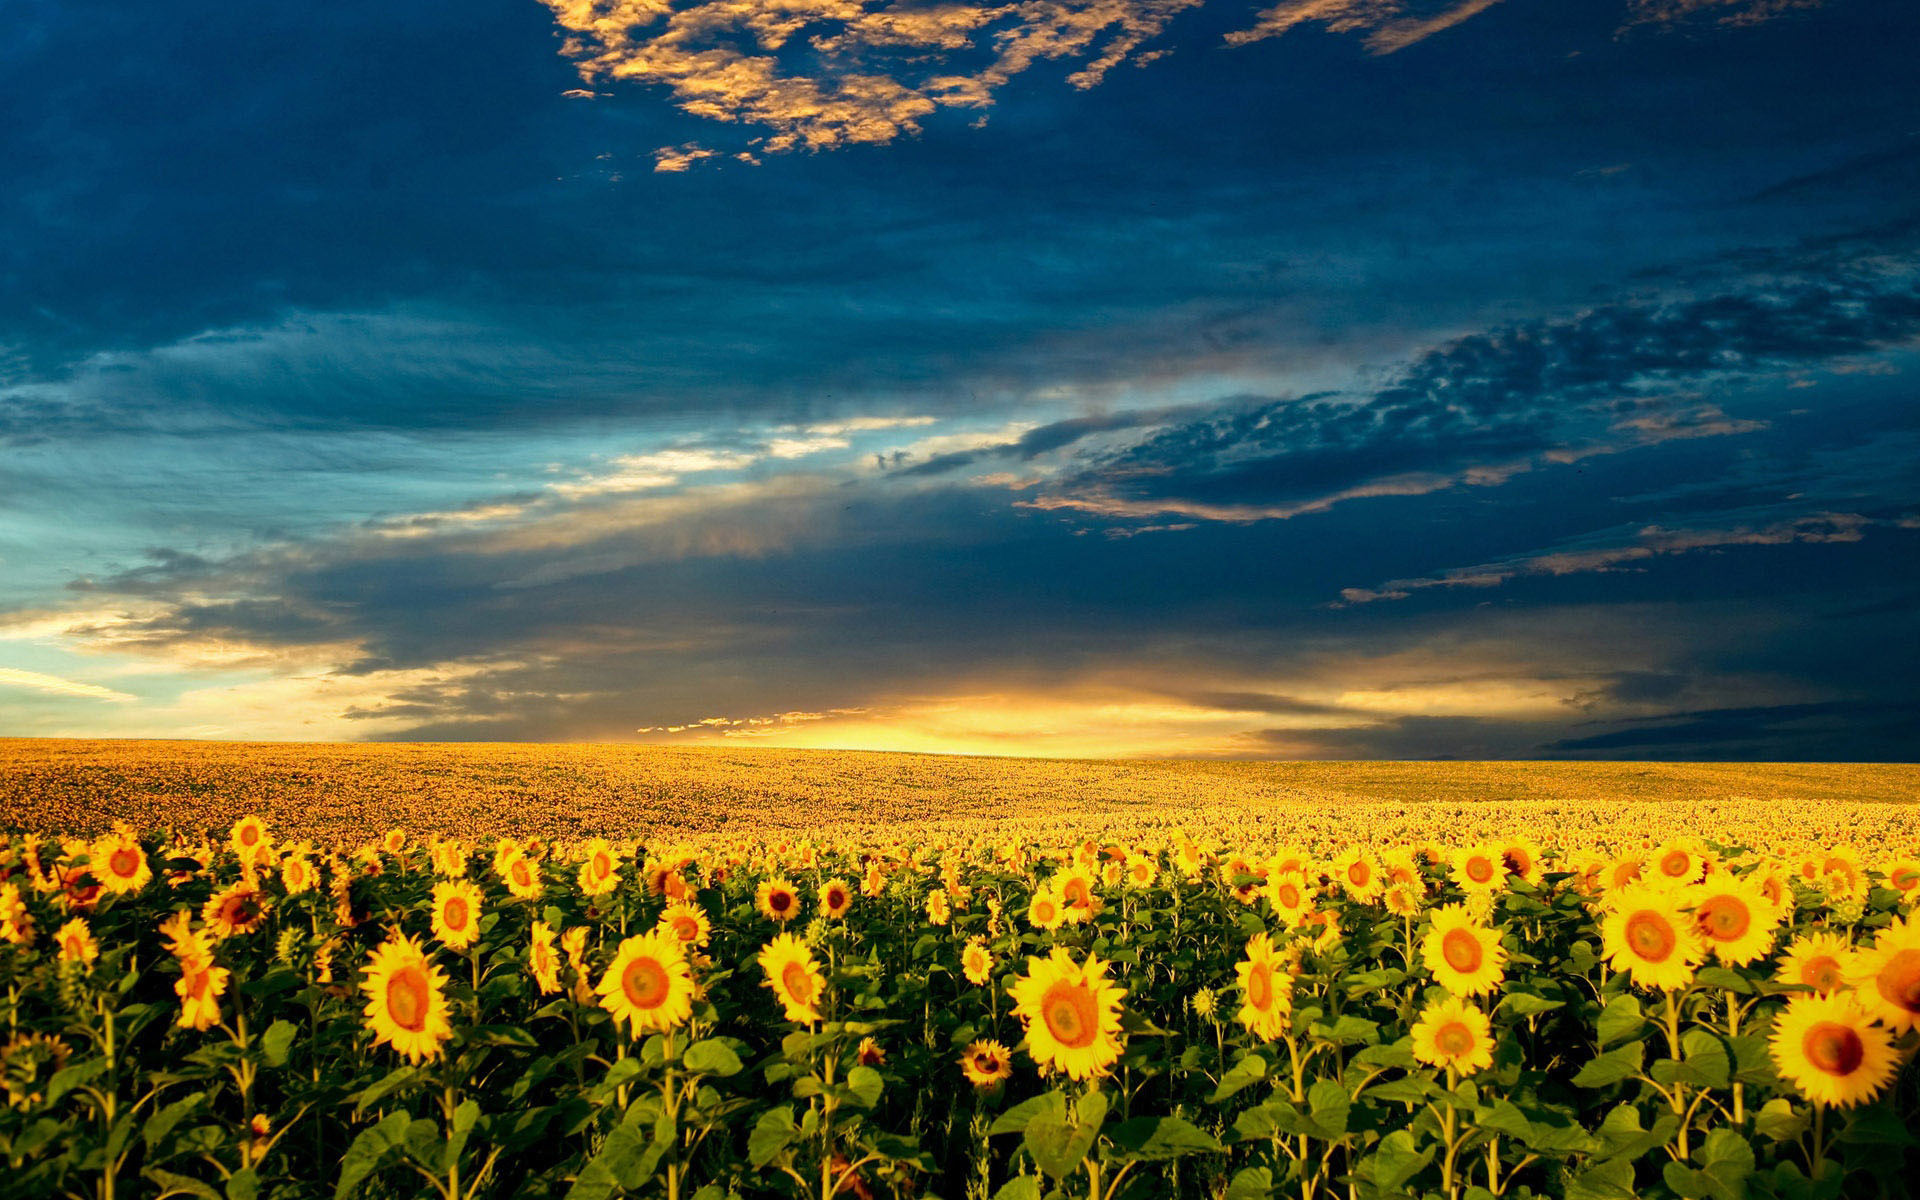 Sunflower Field Pictures